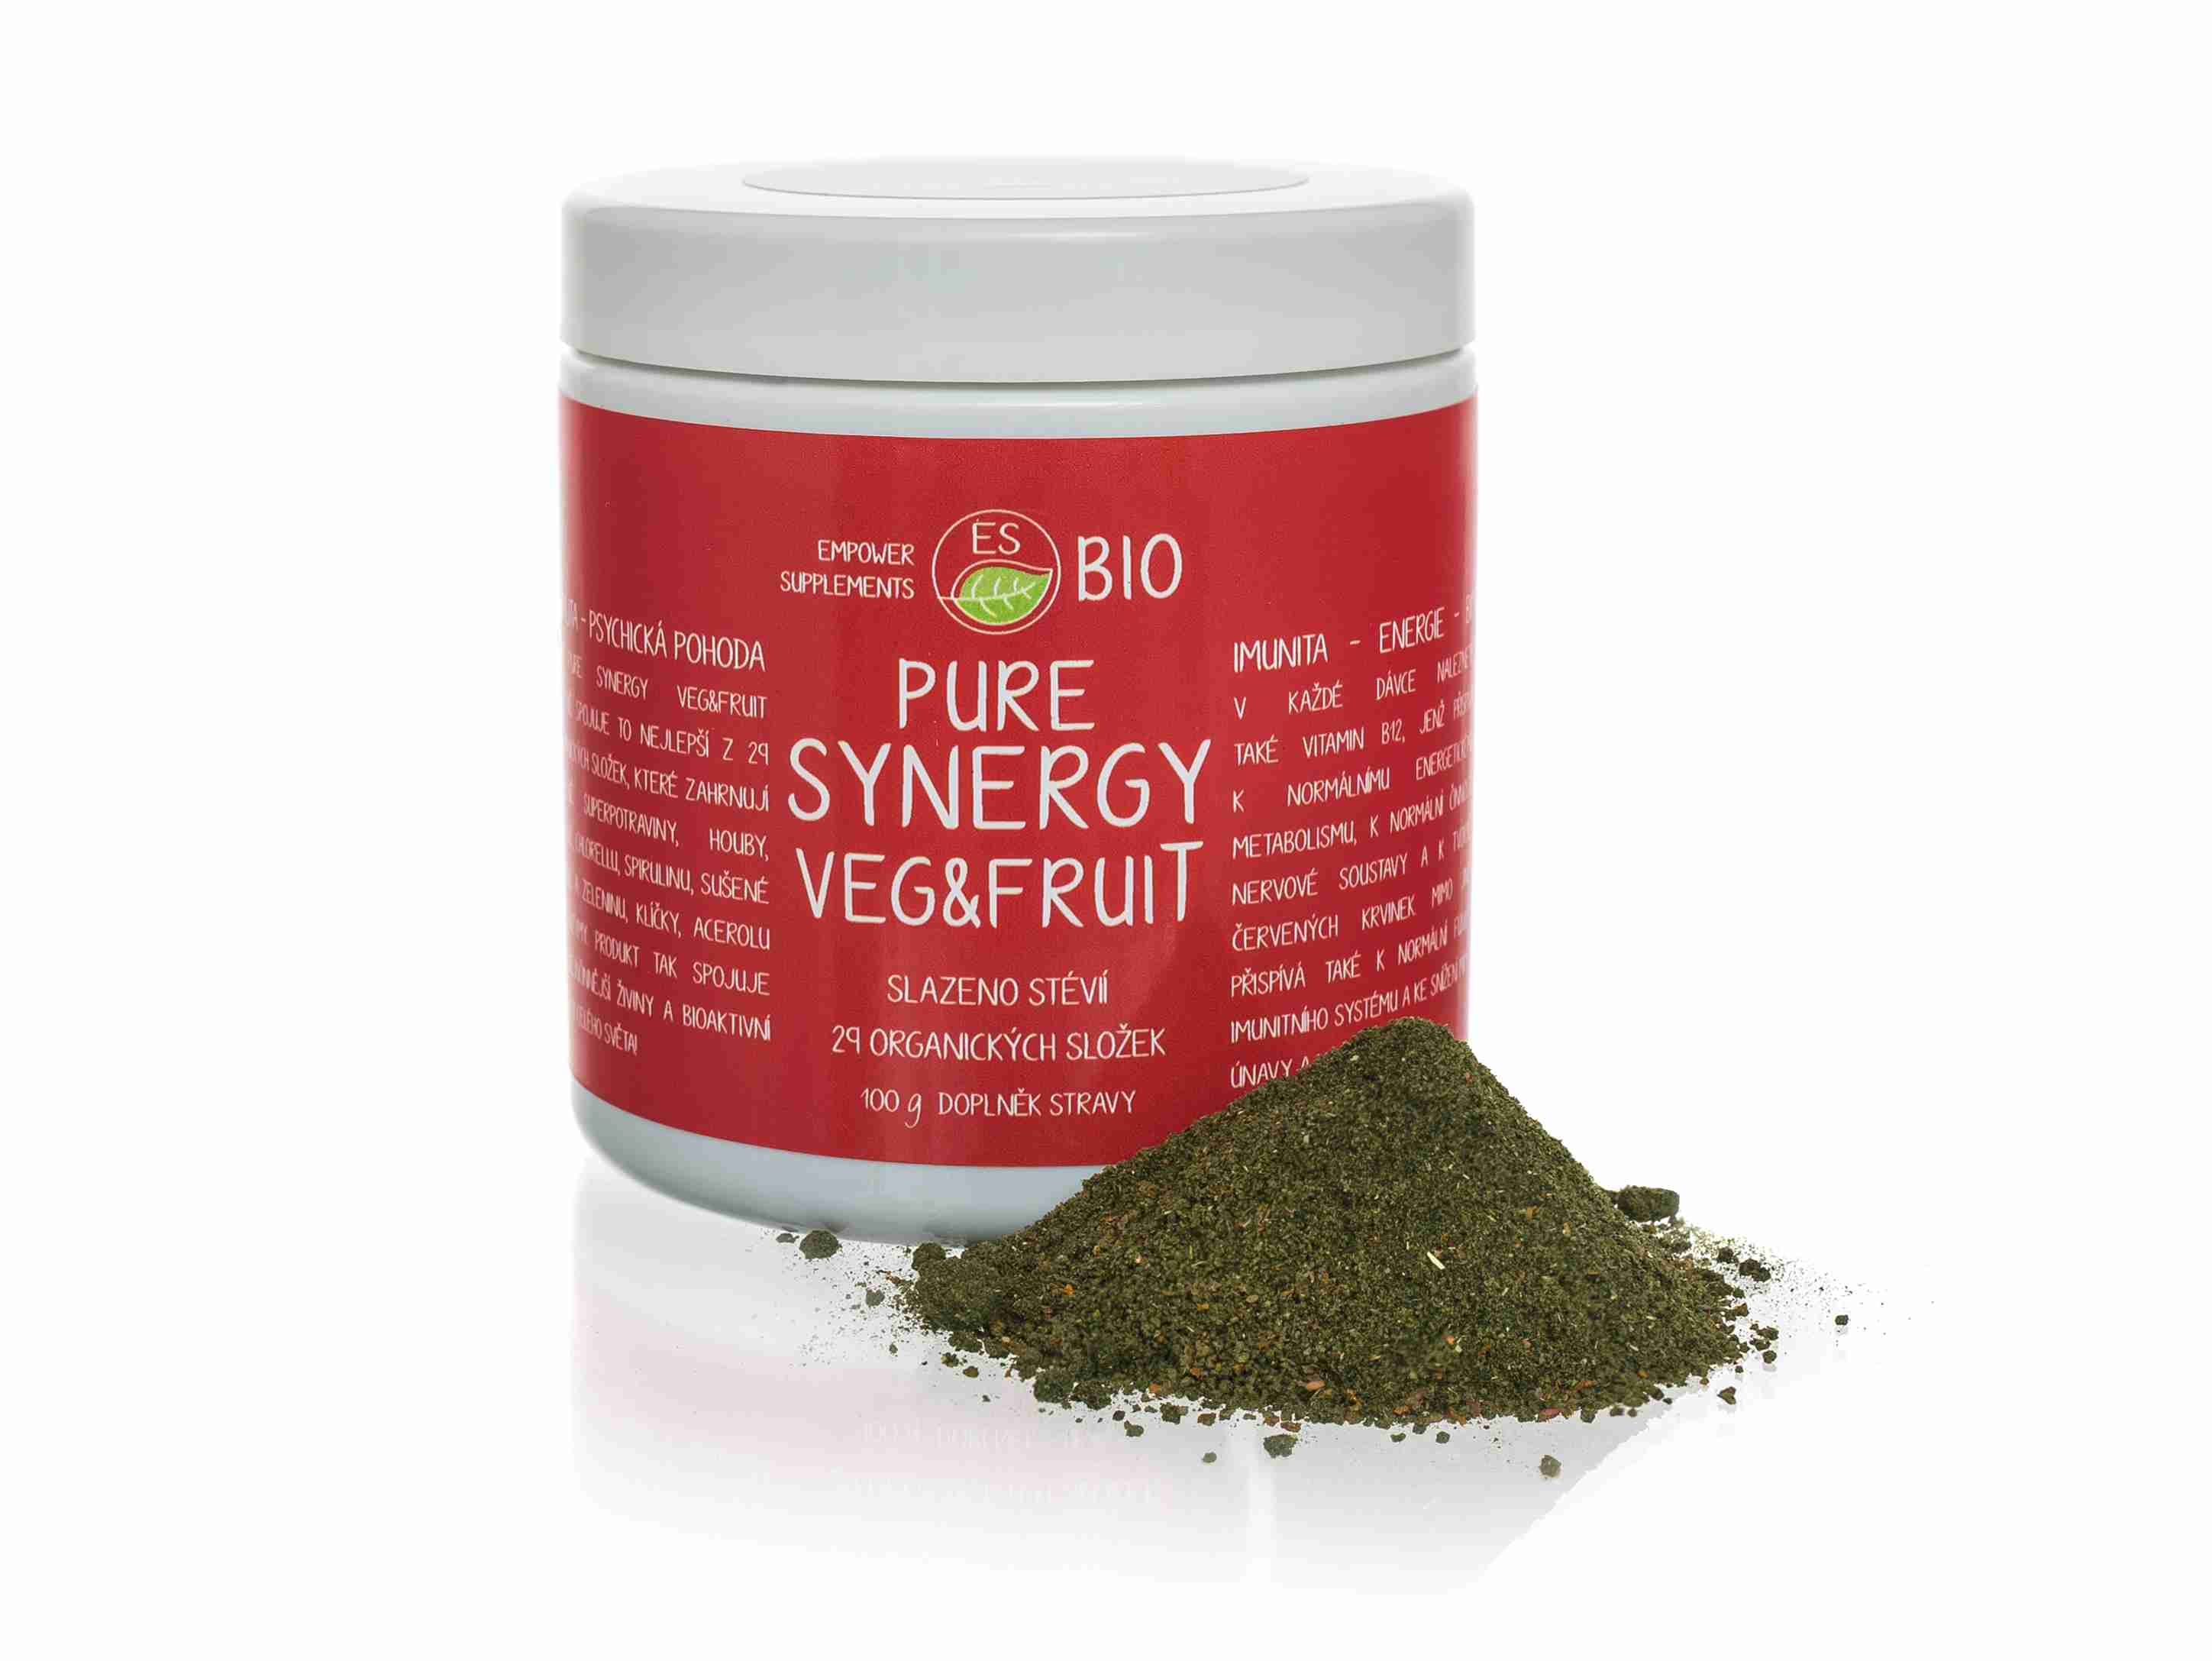 Empower Supplements ES Bio Pure Synergy Veg&Fruit 100 g